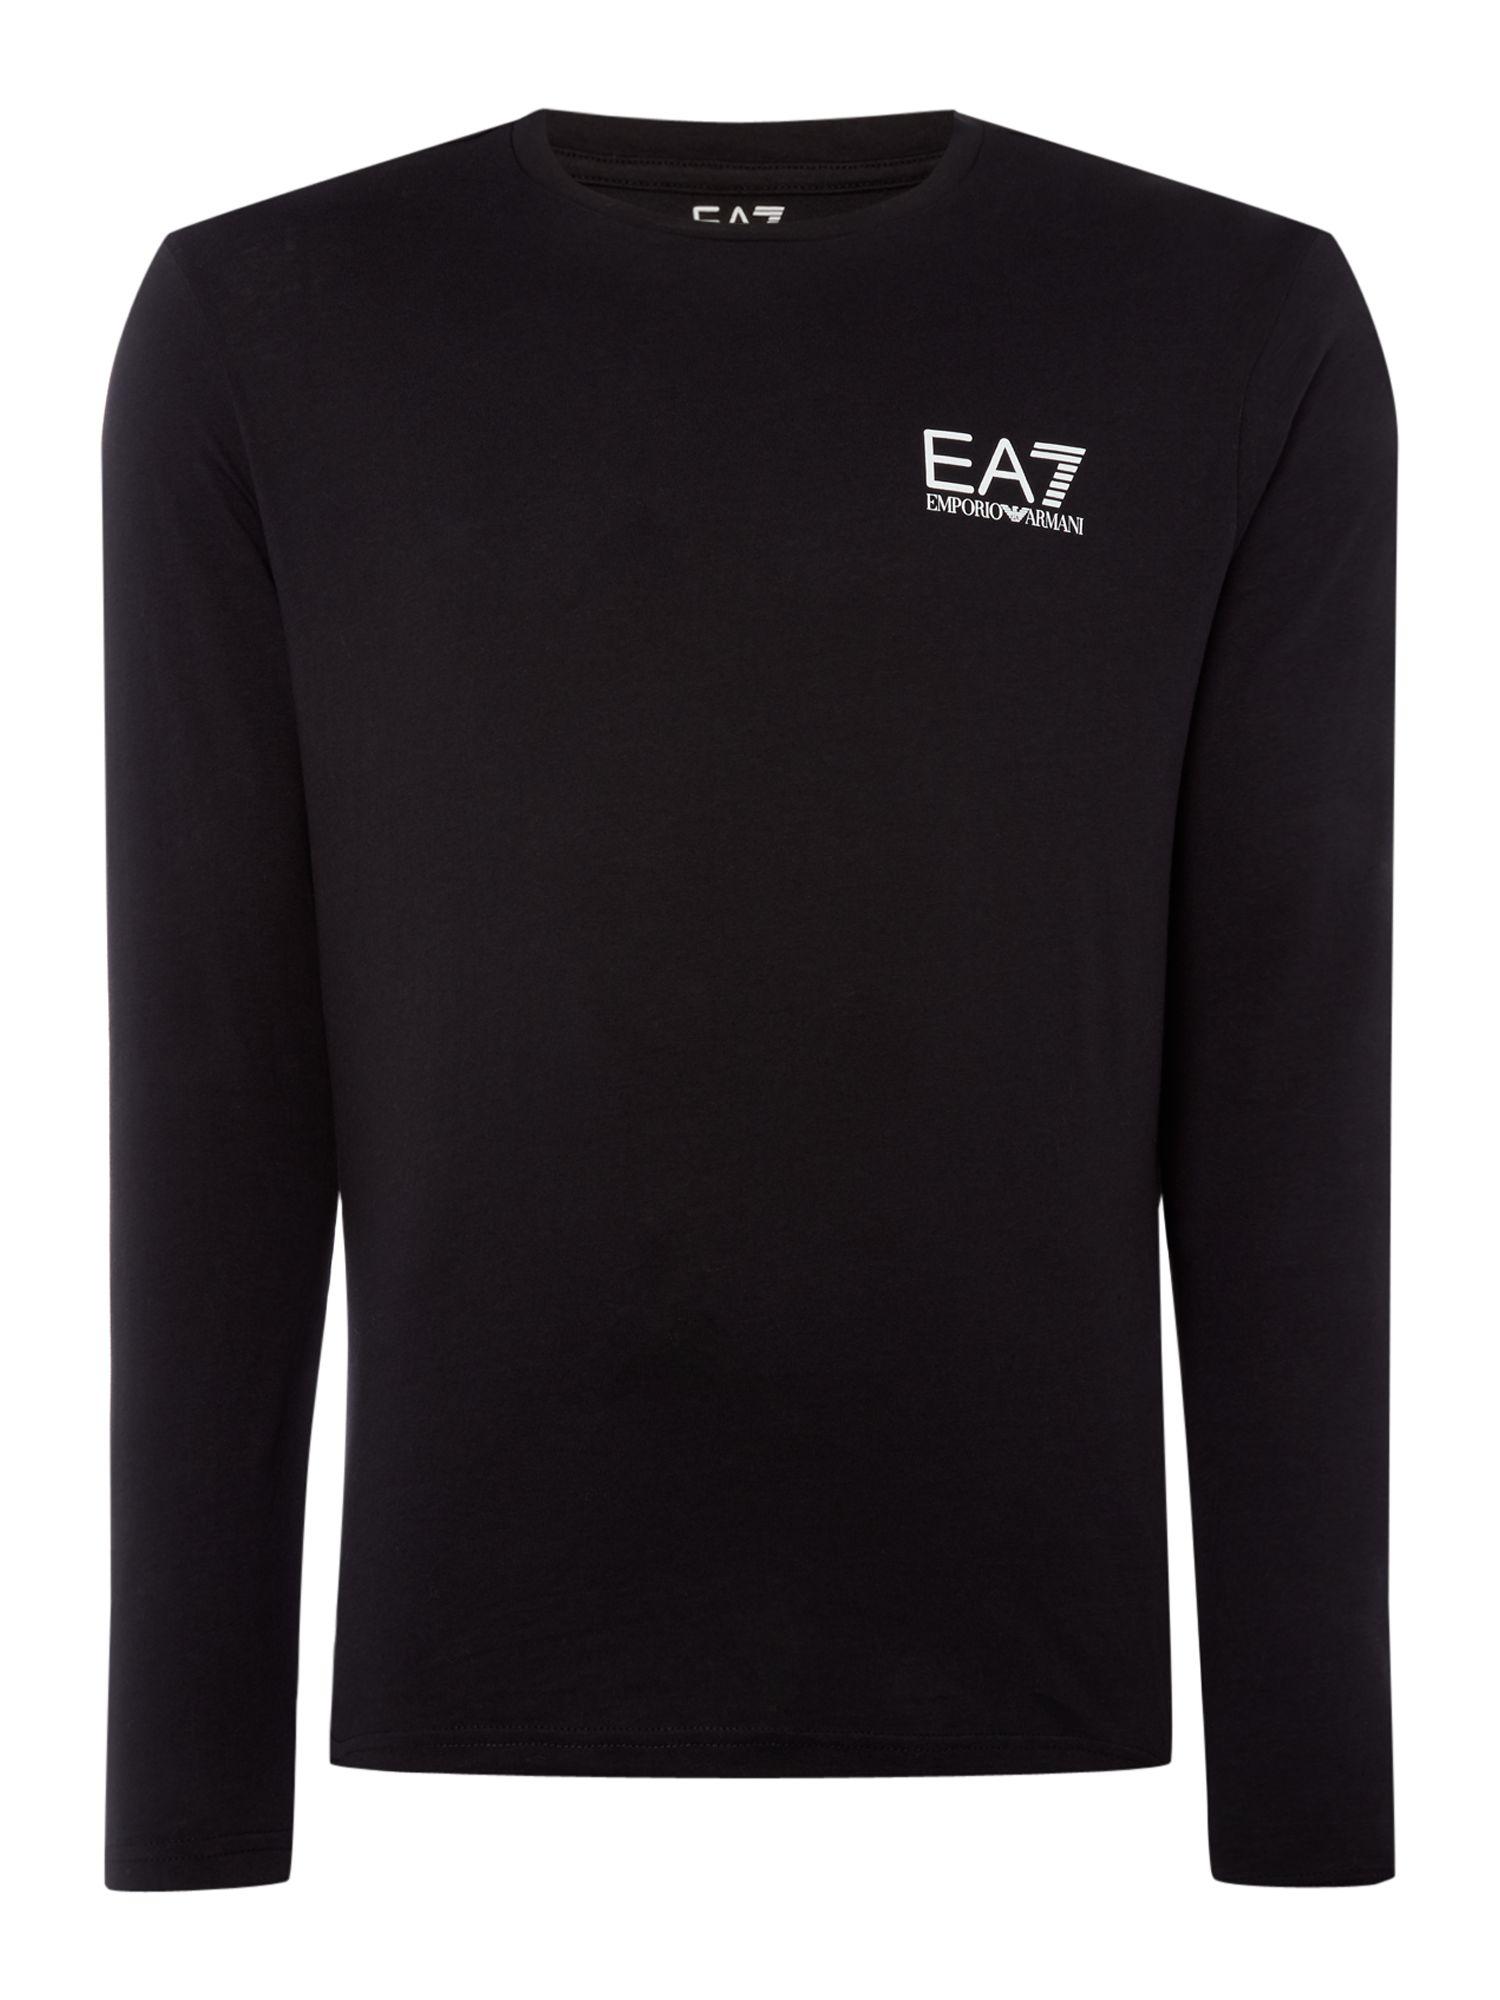 Men's EA7 Long sleeve core id long sleeve tshirt, Black